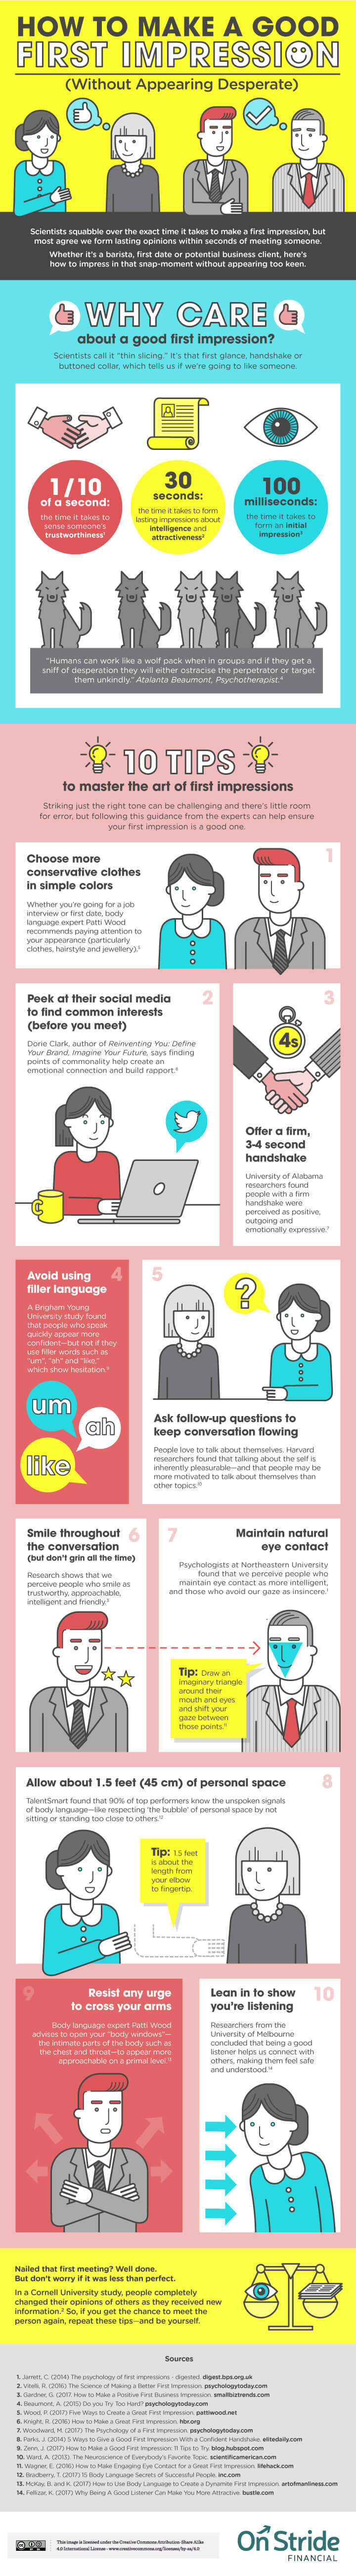 How to Make a Good First Impression (Without Appearing Desperate) [Infographic]